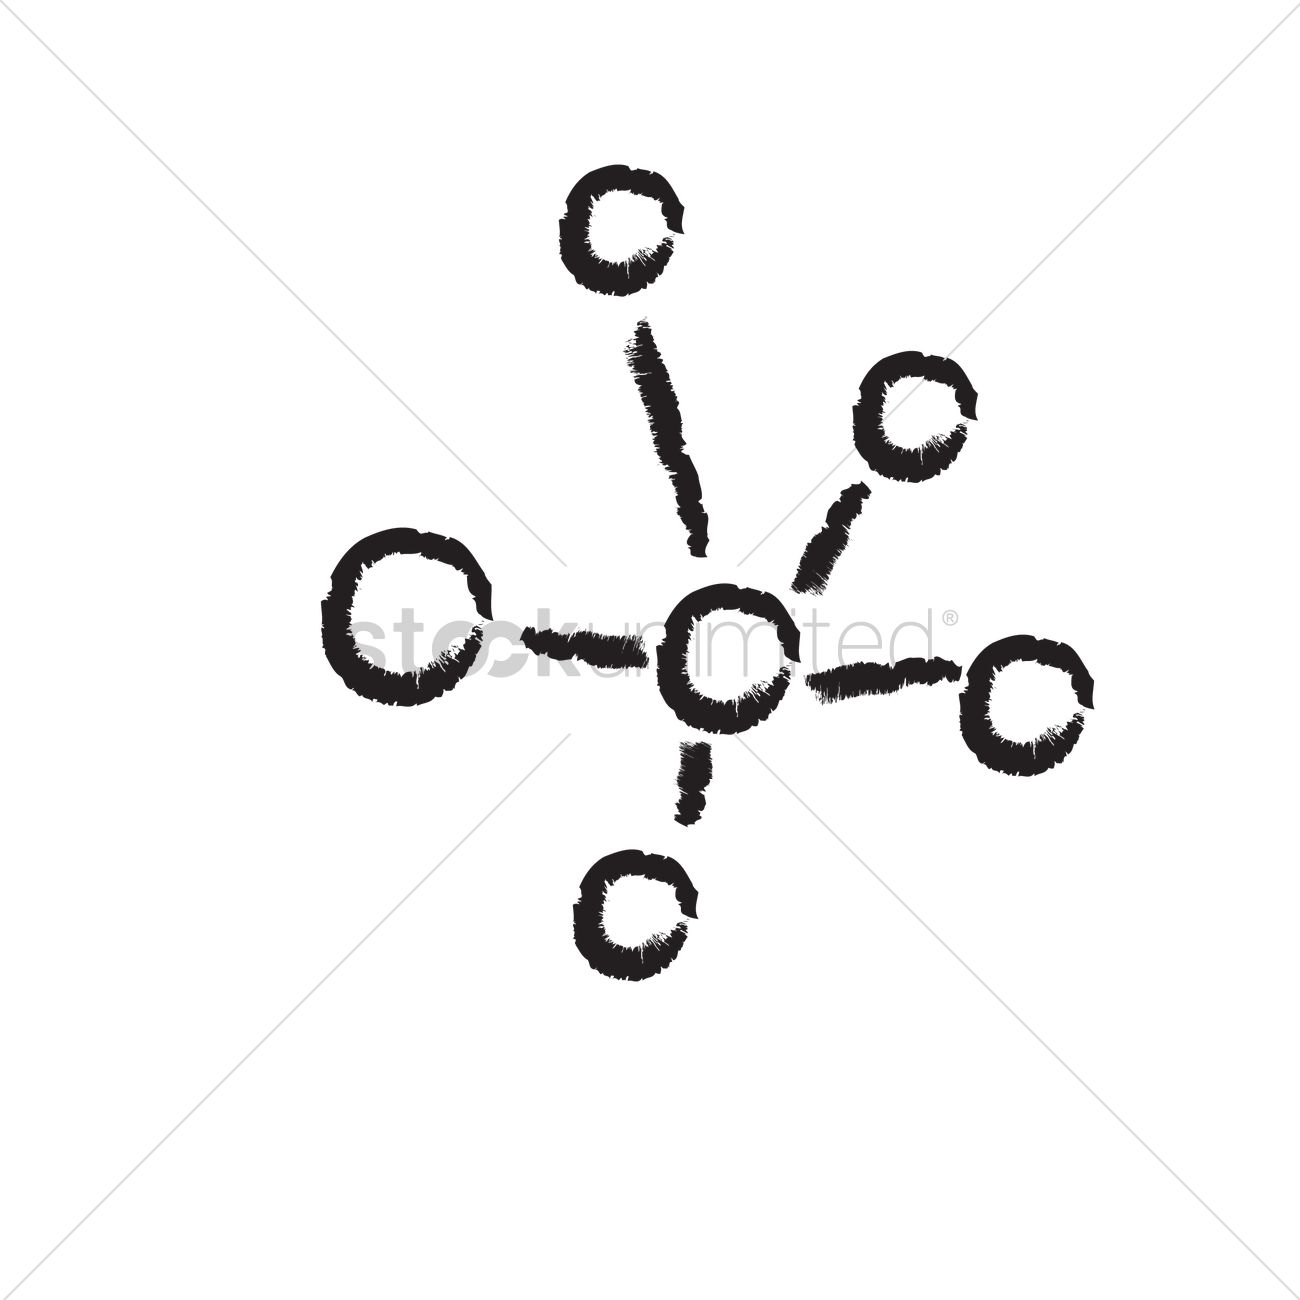 Free atom structure vector image 1241582 stockunlimited free atom structure vector graphic ccuart Images